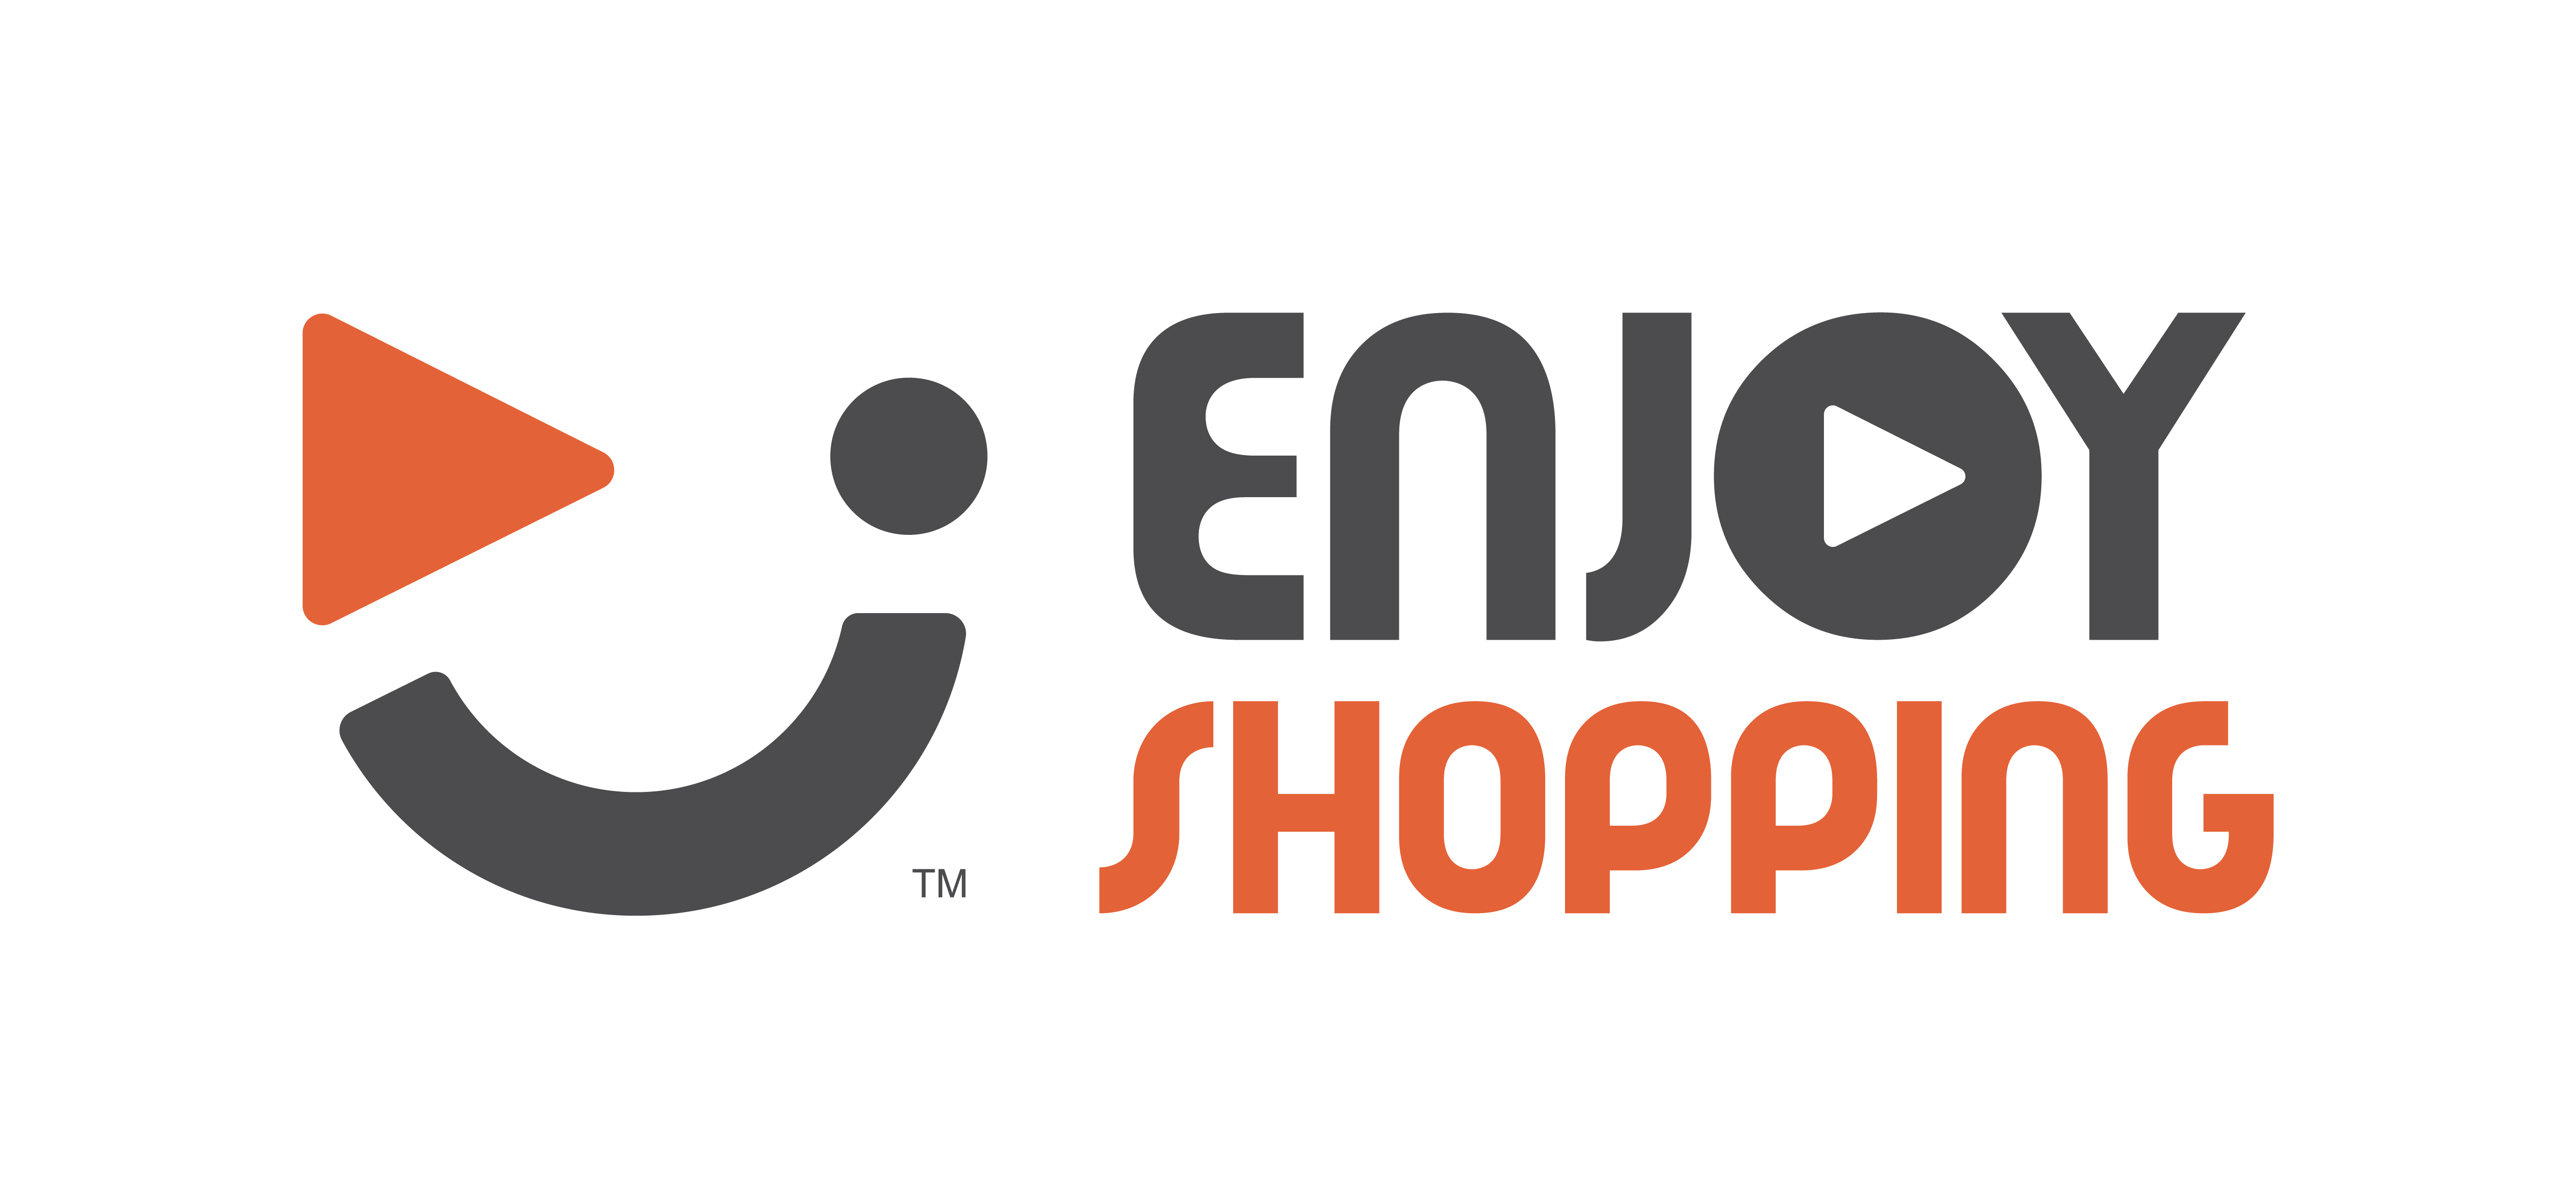 Enjoy TV SHOPPING LOGO WEB